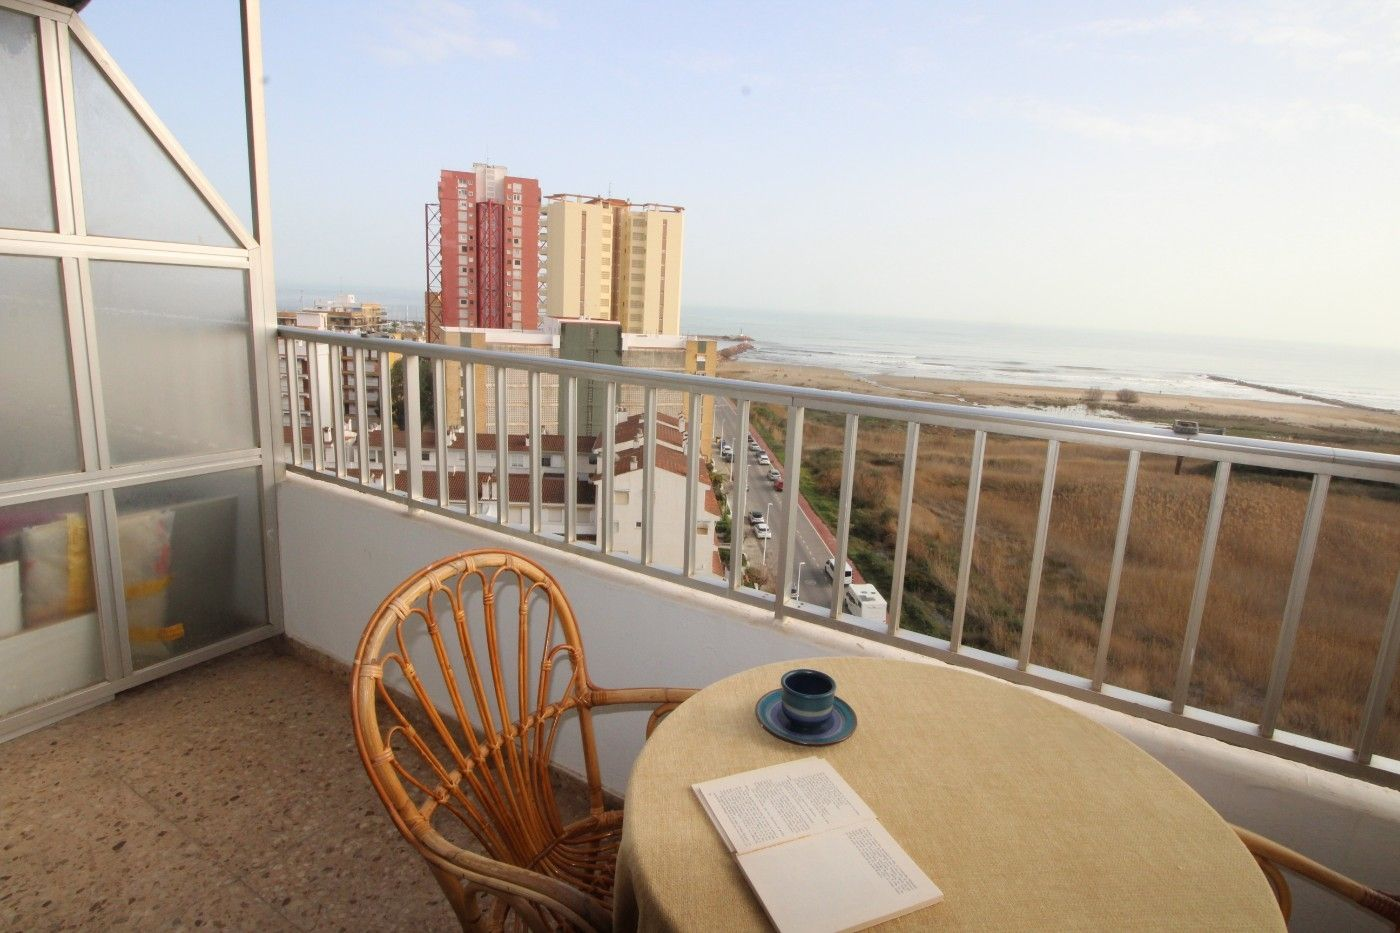 Appartement in Calle cantarrana, 1 bl. a 9º 18ª. Irresistible vistas al mar medit